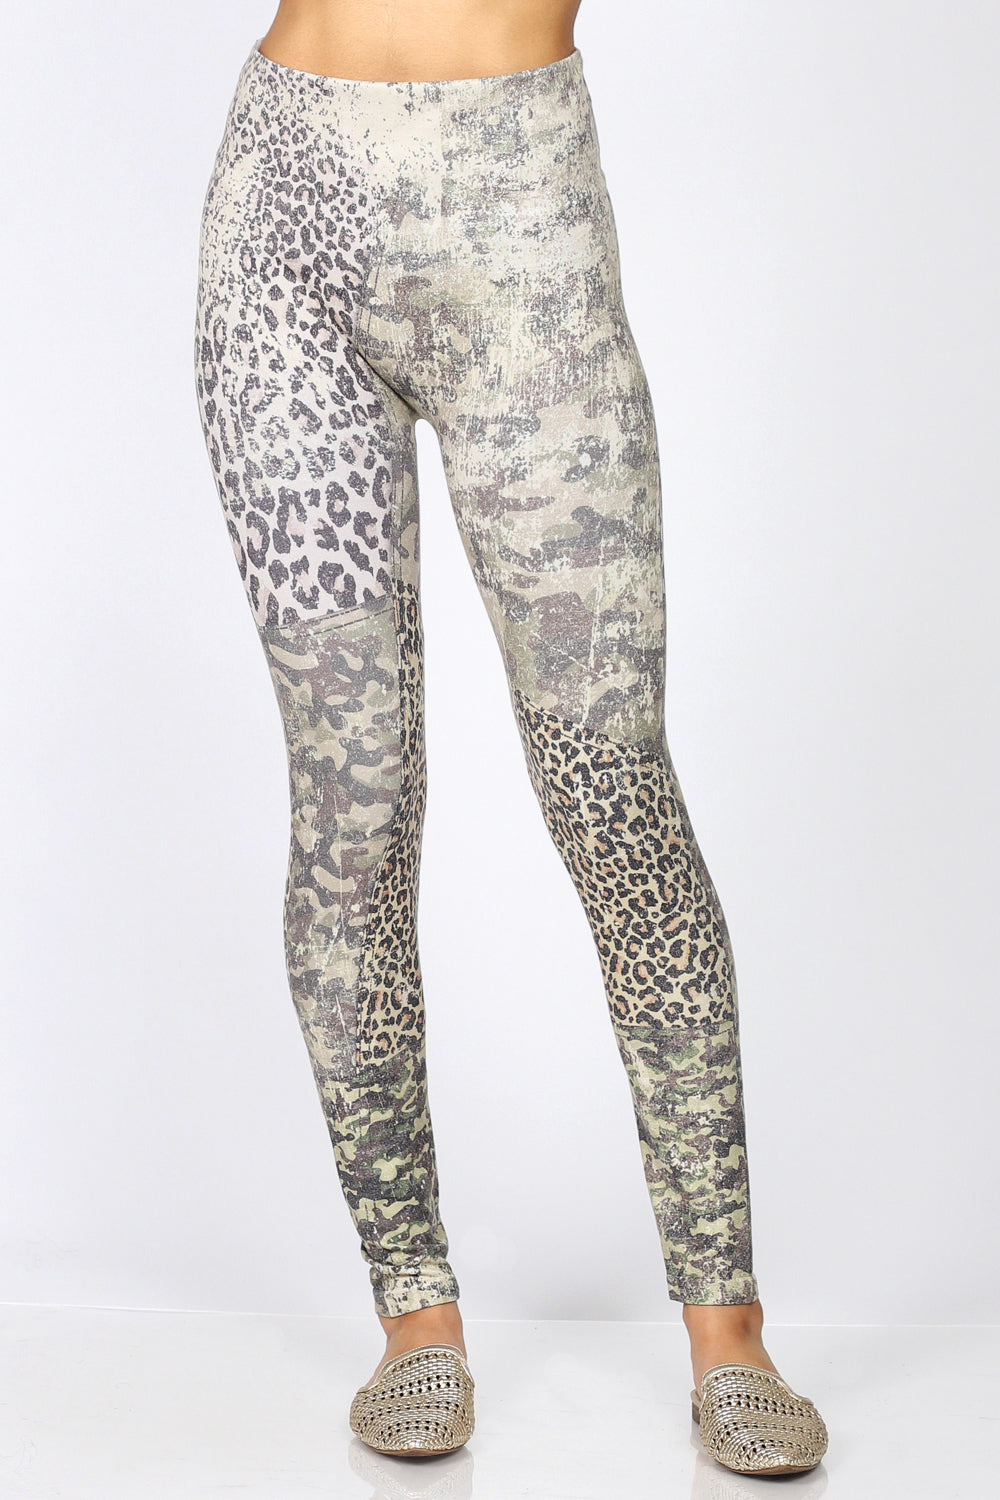 Camo Cheetah Leggings